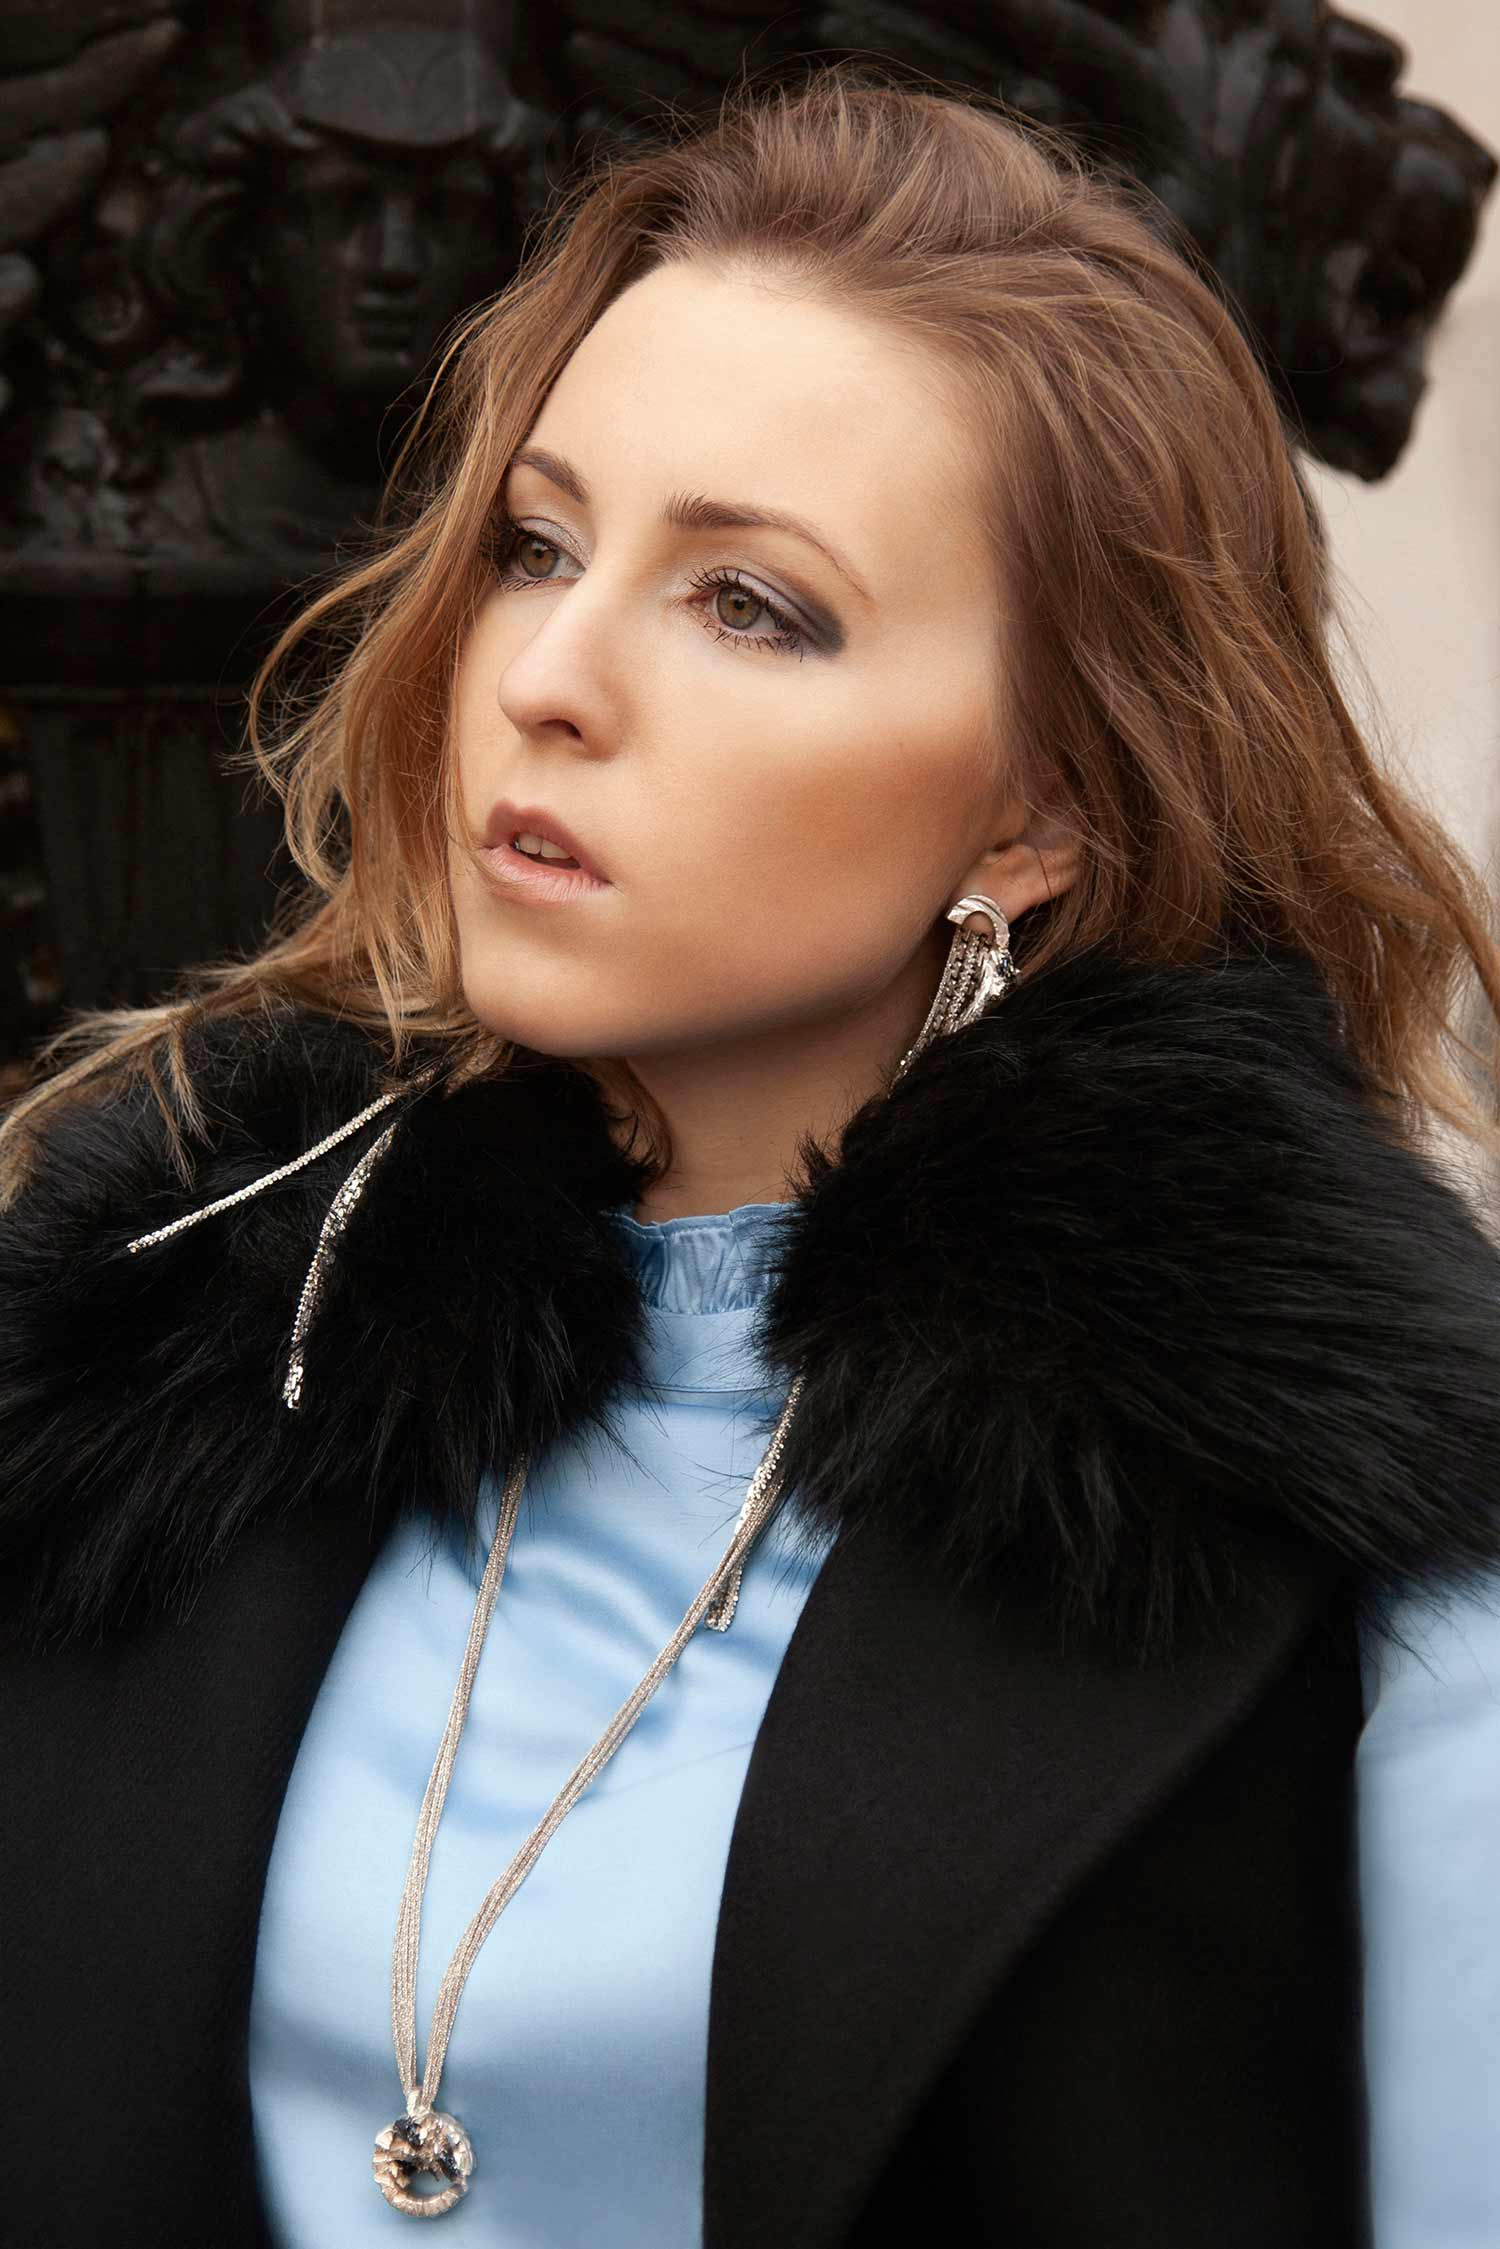 Portrait of model wearing Zydrune Anomaly statement earrings and handmade pendant.